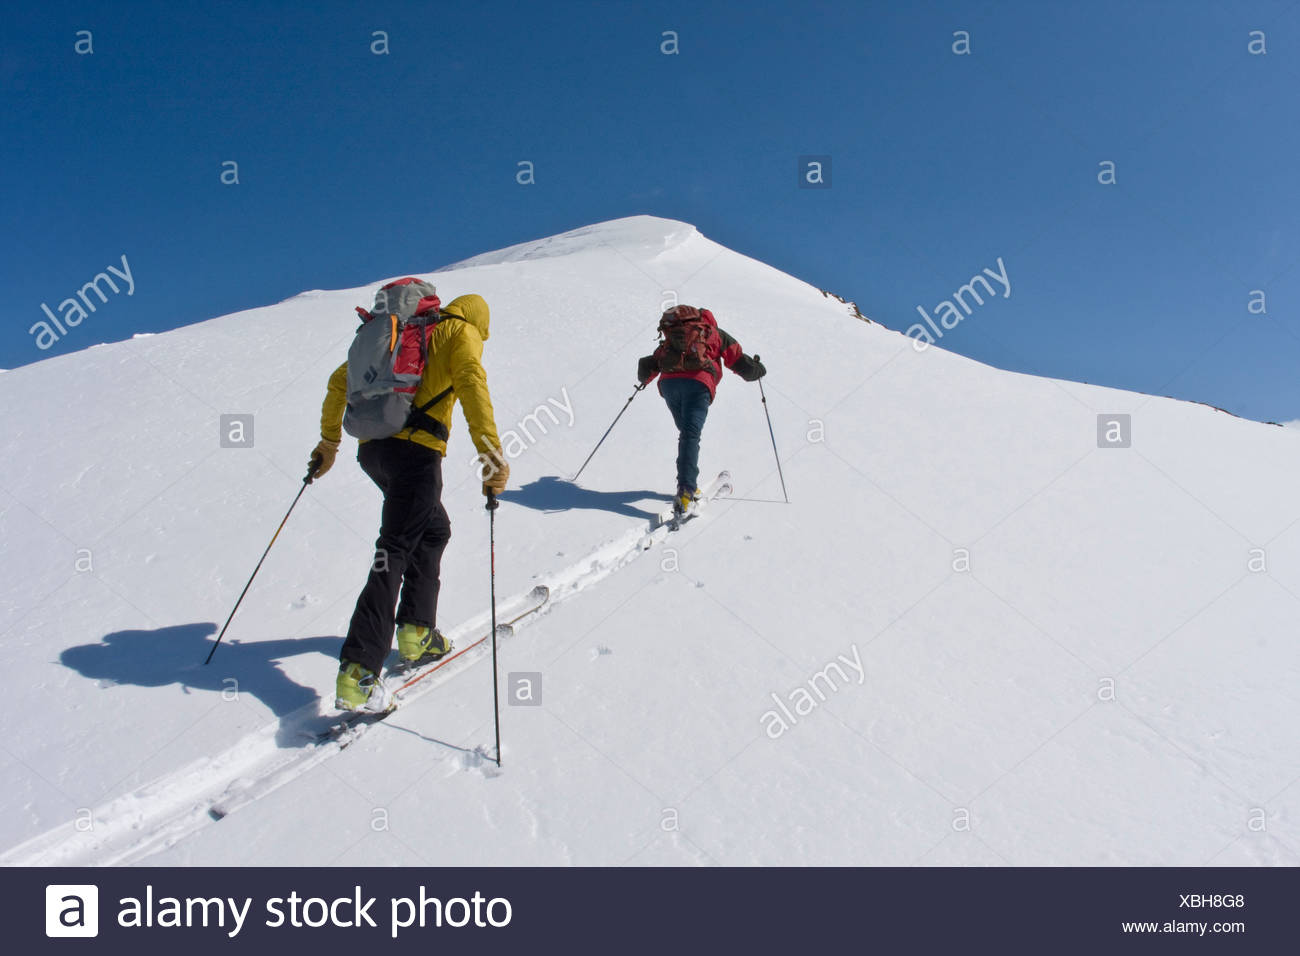 c5940c6c1 Men backcountry skiing